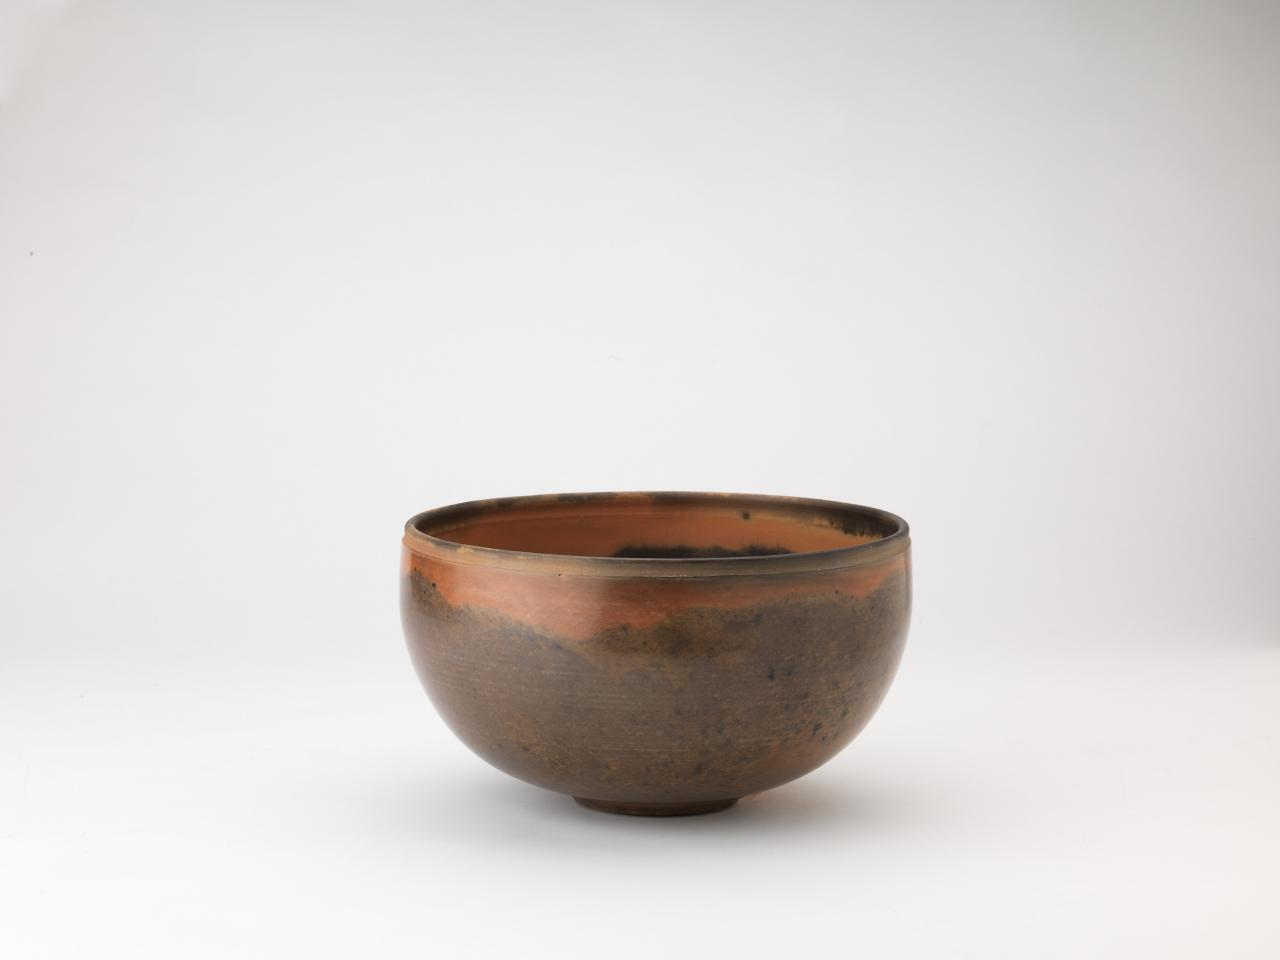 Saltbush plains of the imagination, bowl